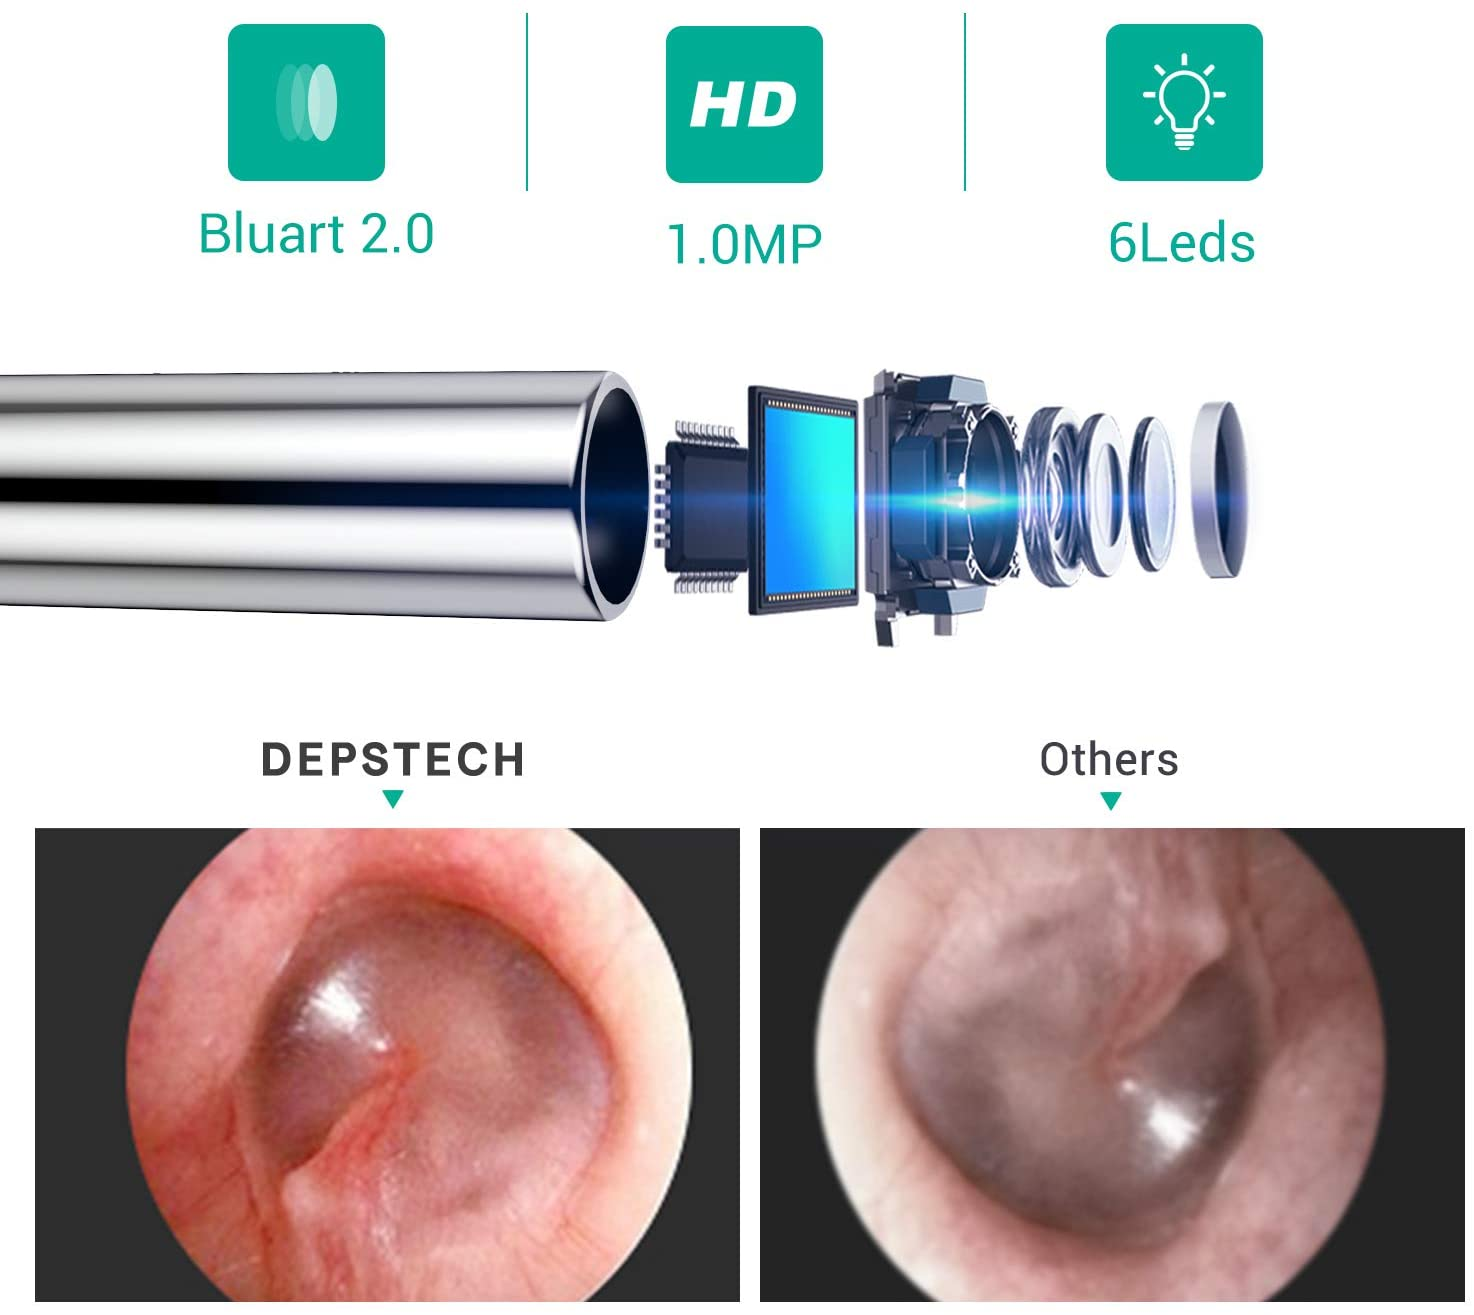 2-in-1 USB and WiFi Otoscope 4.3mm Ear Camera 6 Adjustable LEDs